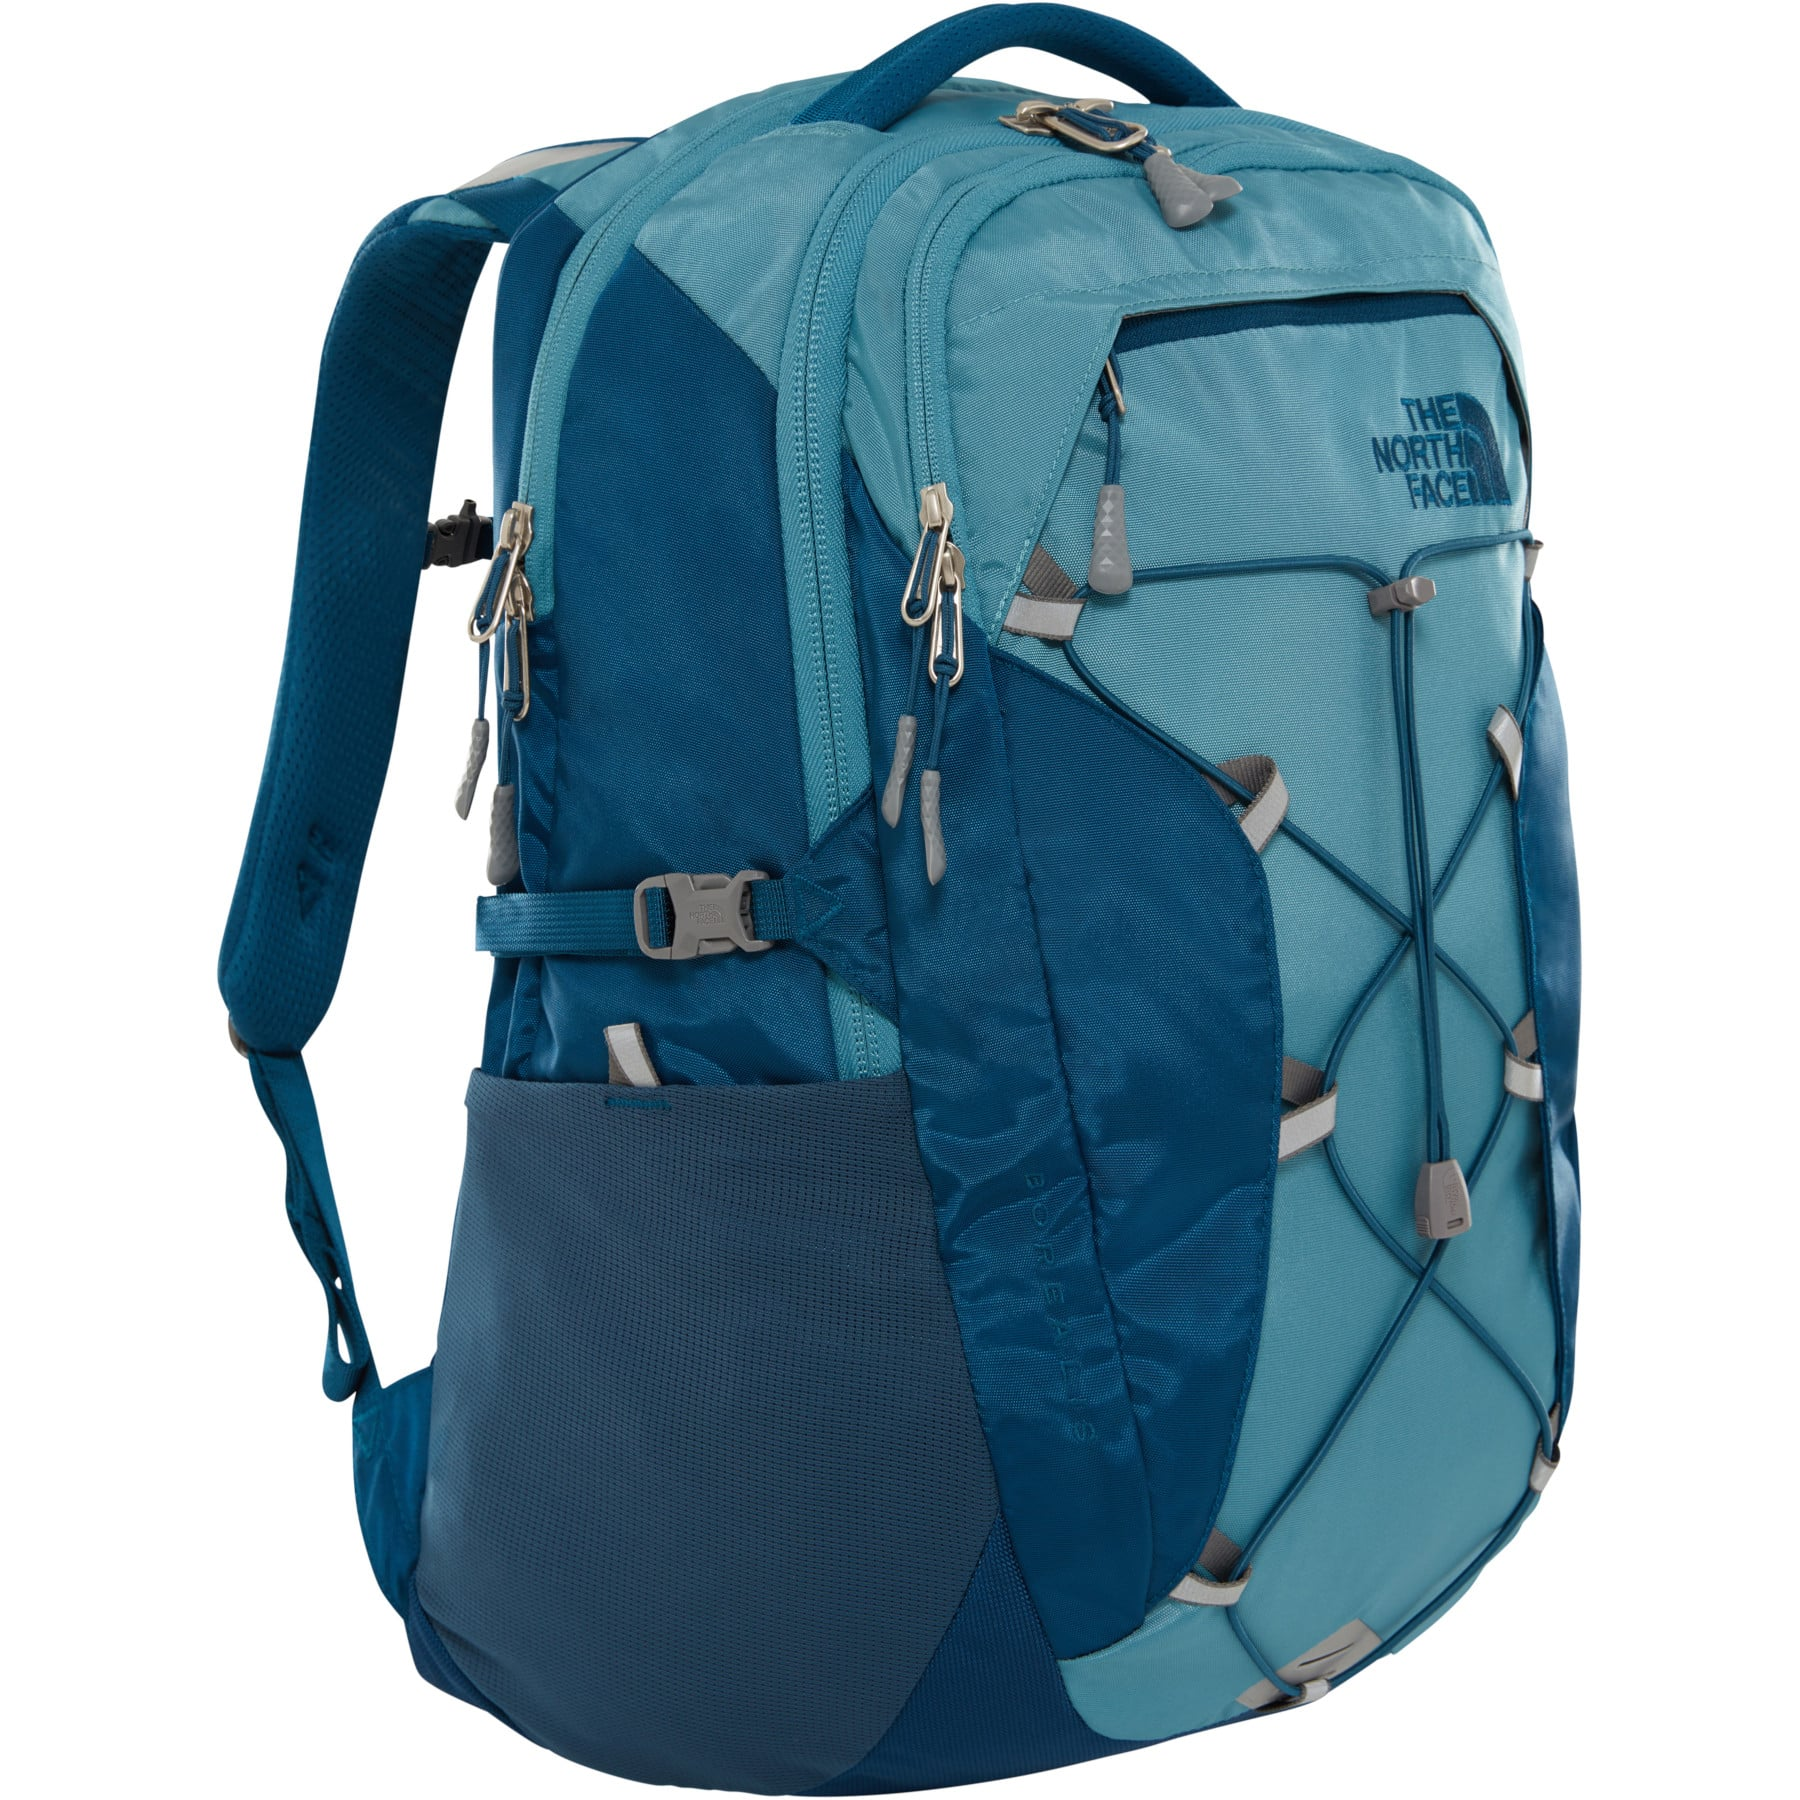 Рюкзак женский The North Face W Borealis Sailor Blue - Фото 2 большая